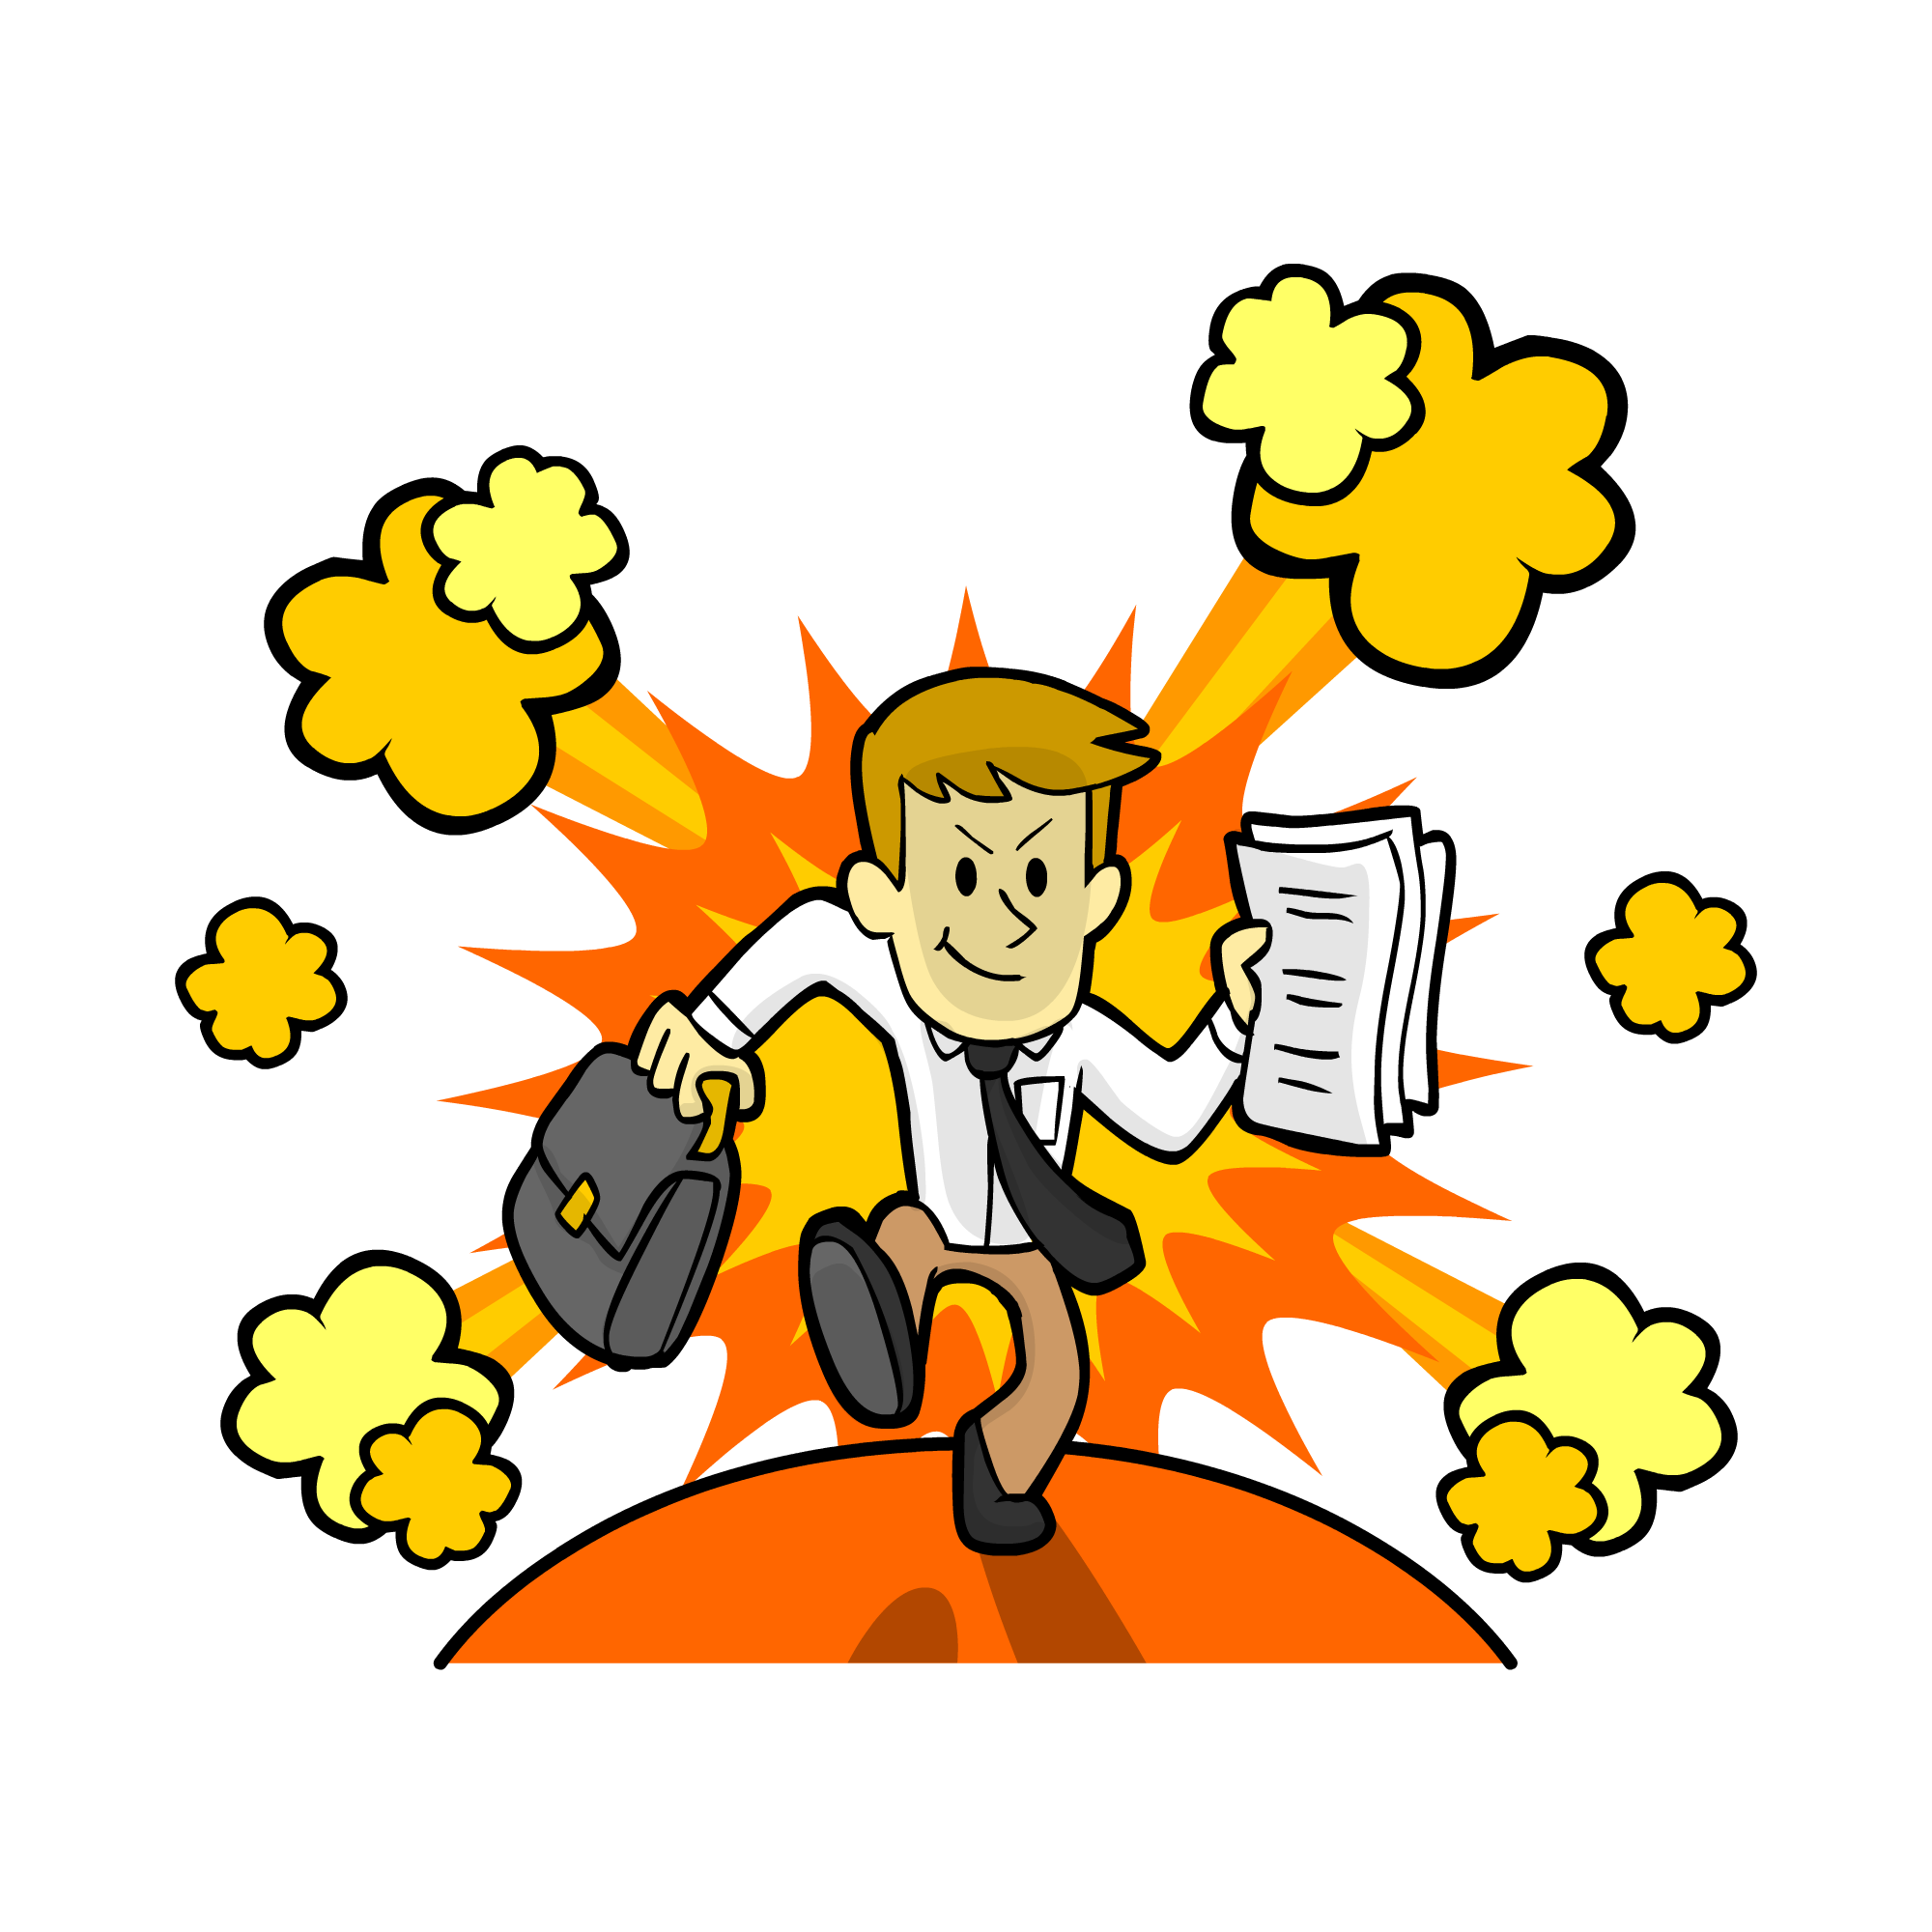 Jobs clipart job application. Decided to try something